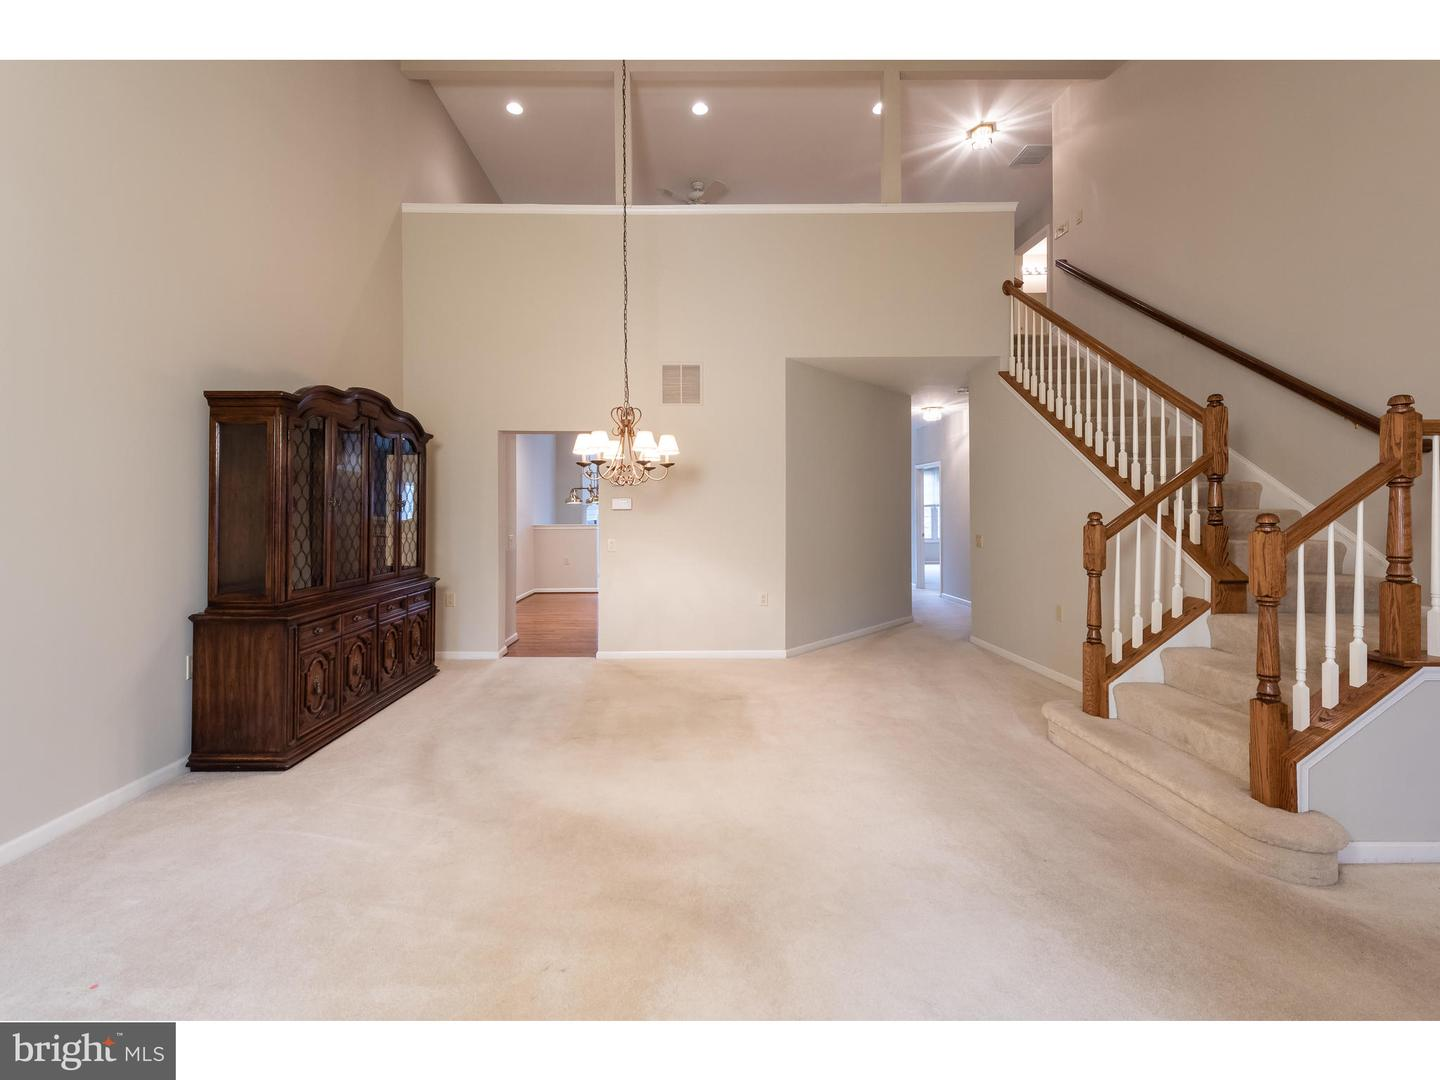 1636 Yardley Drive West Chester , PA 19380